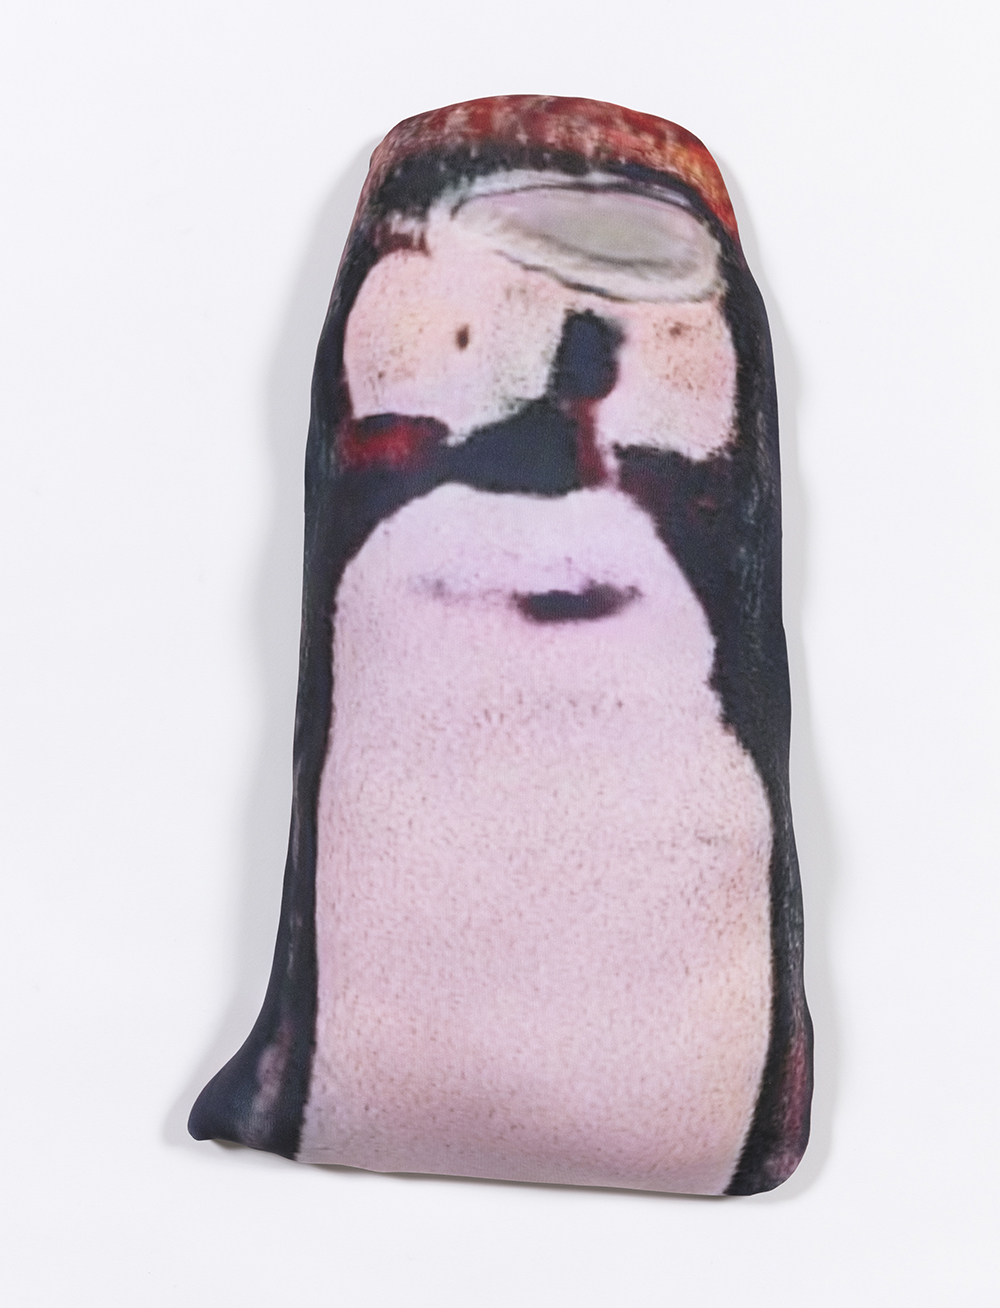 Hannah Epstein. <em>Mutant Penguin</em>, 2020. Digital print on lycra; polyfill and wood, 22 x 12 x 3 inches (55.9 x 30.5 x 7.6 cm)